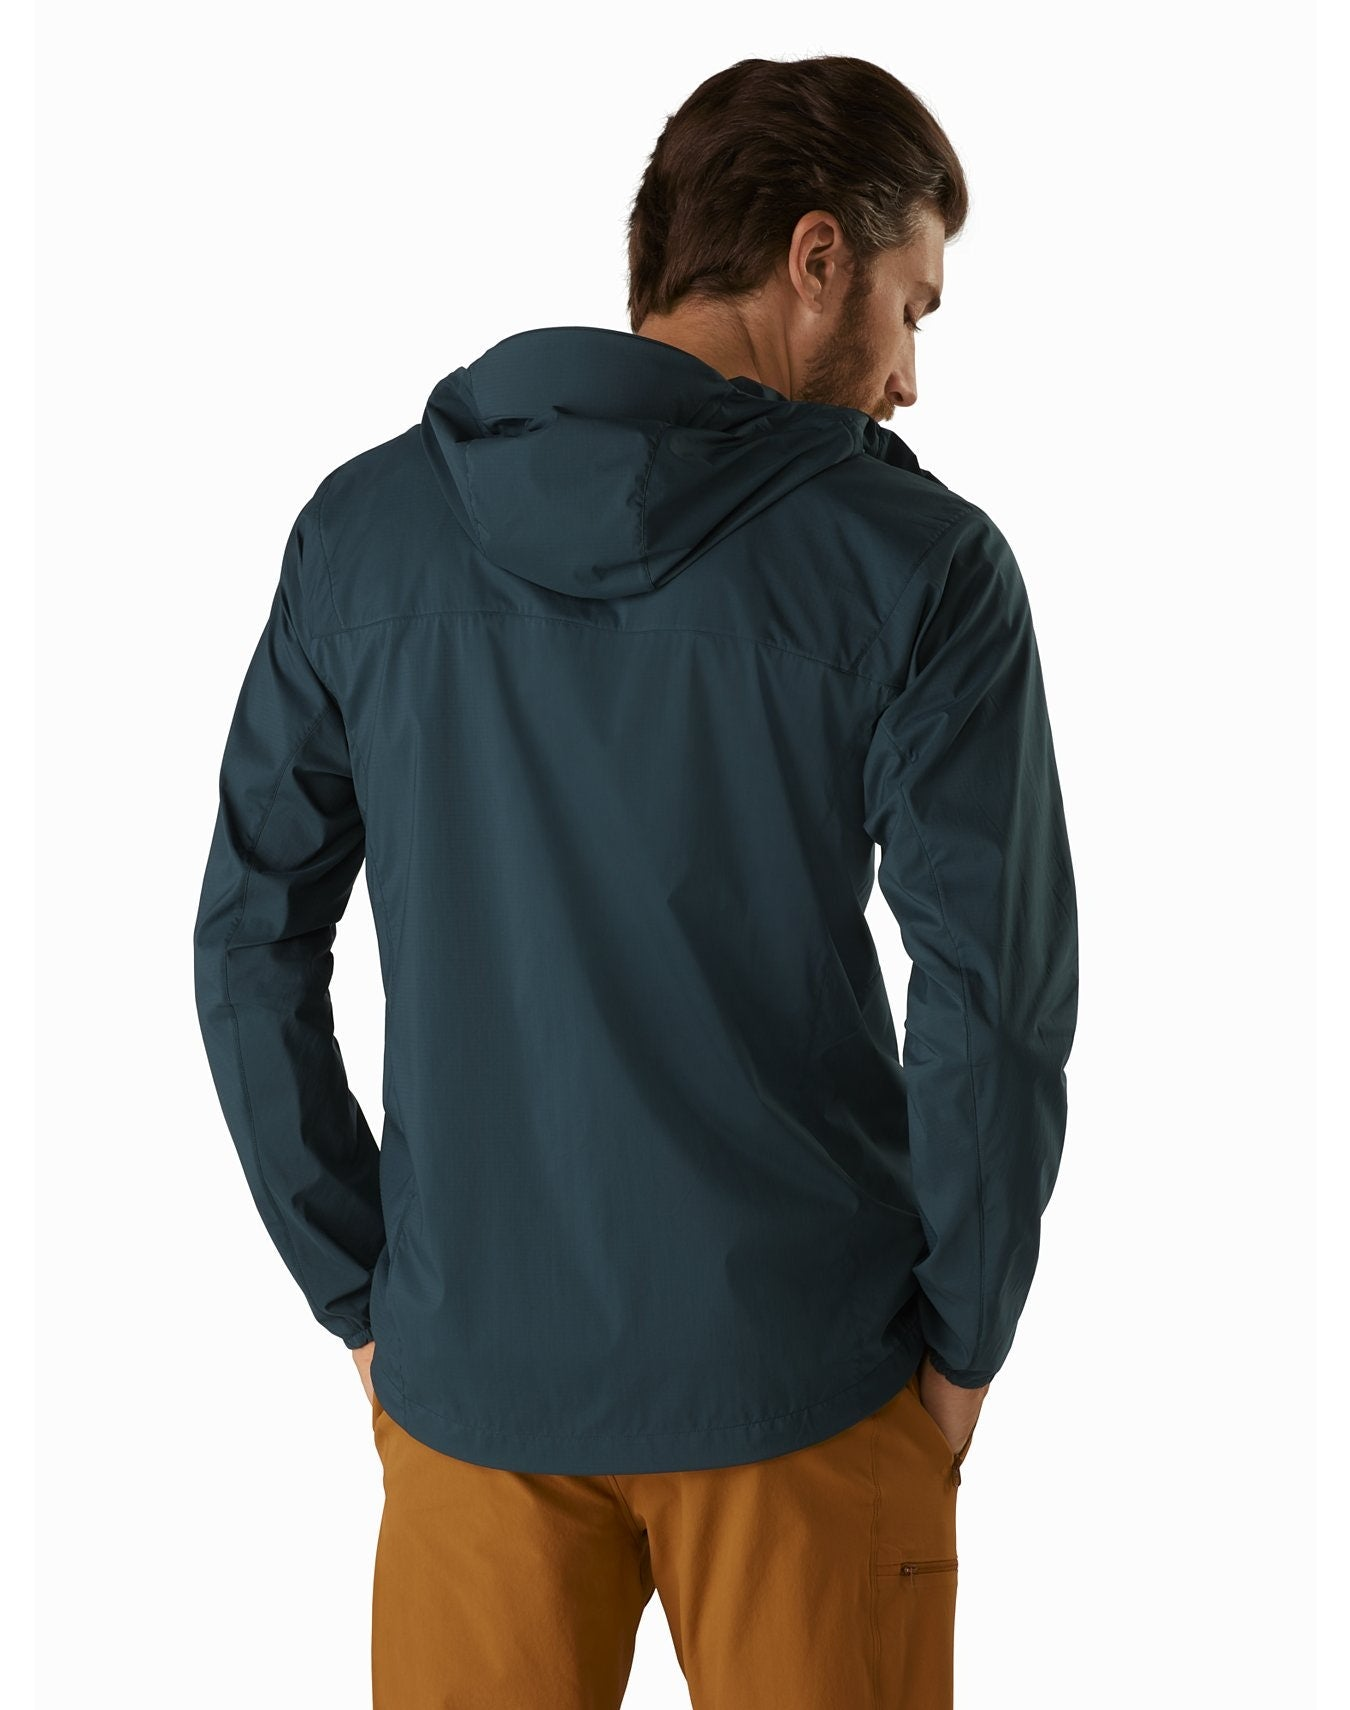 ARC'TERYX M'S WINDBREAKERS SQUAMISH HOODY